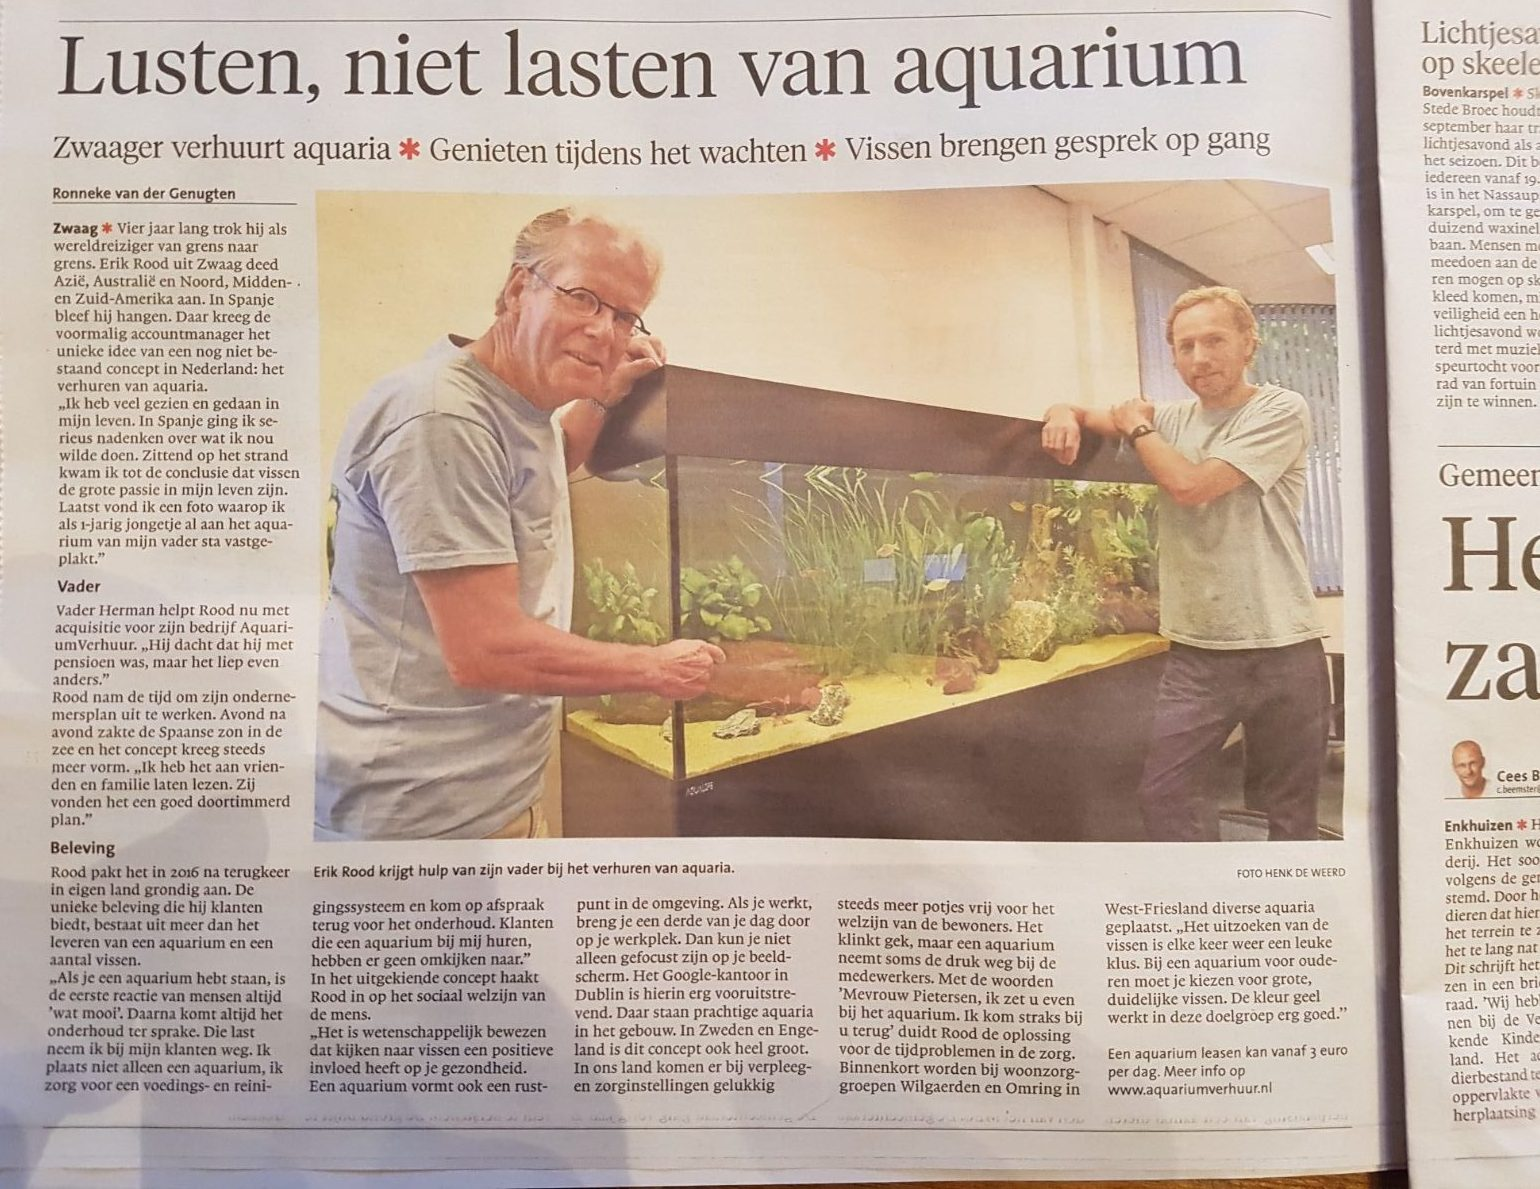 Aquariumverhuur in Noord-Hollands Dagblad